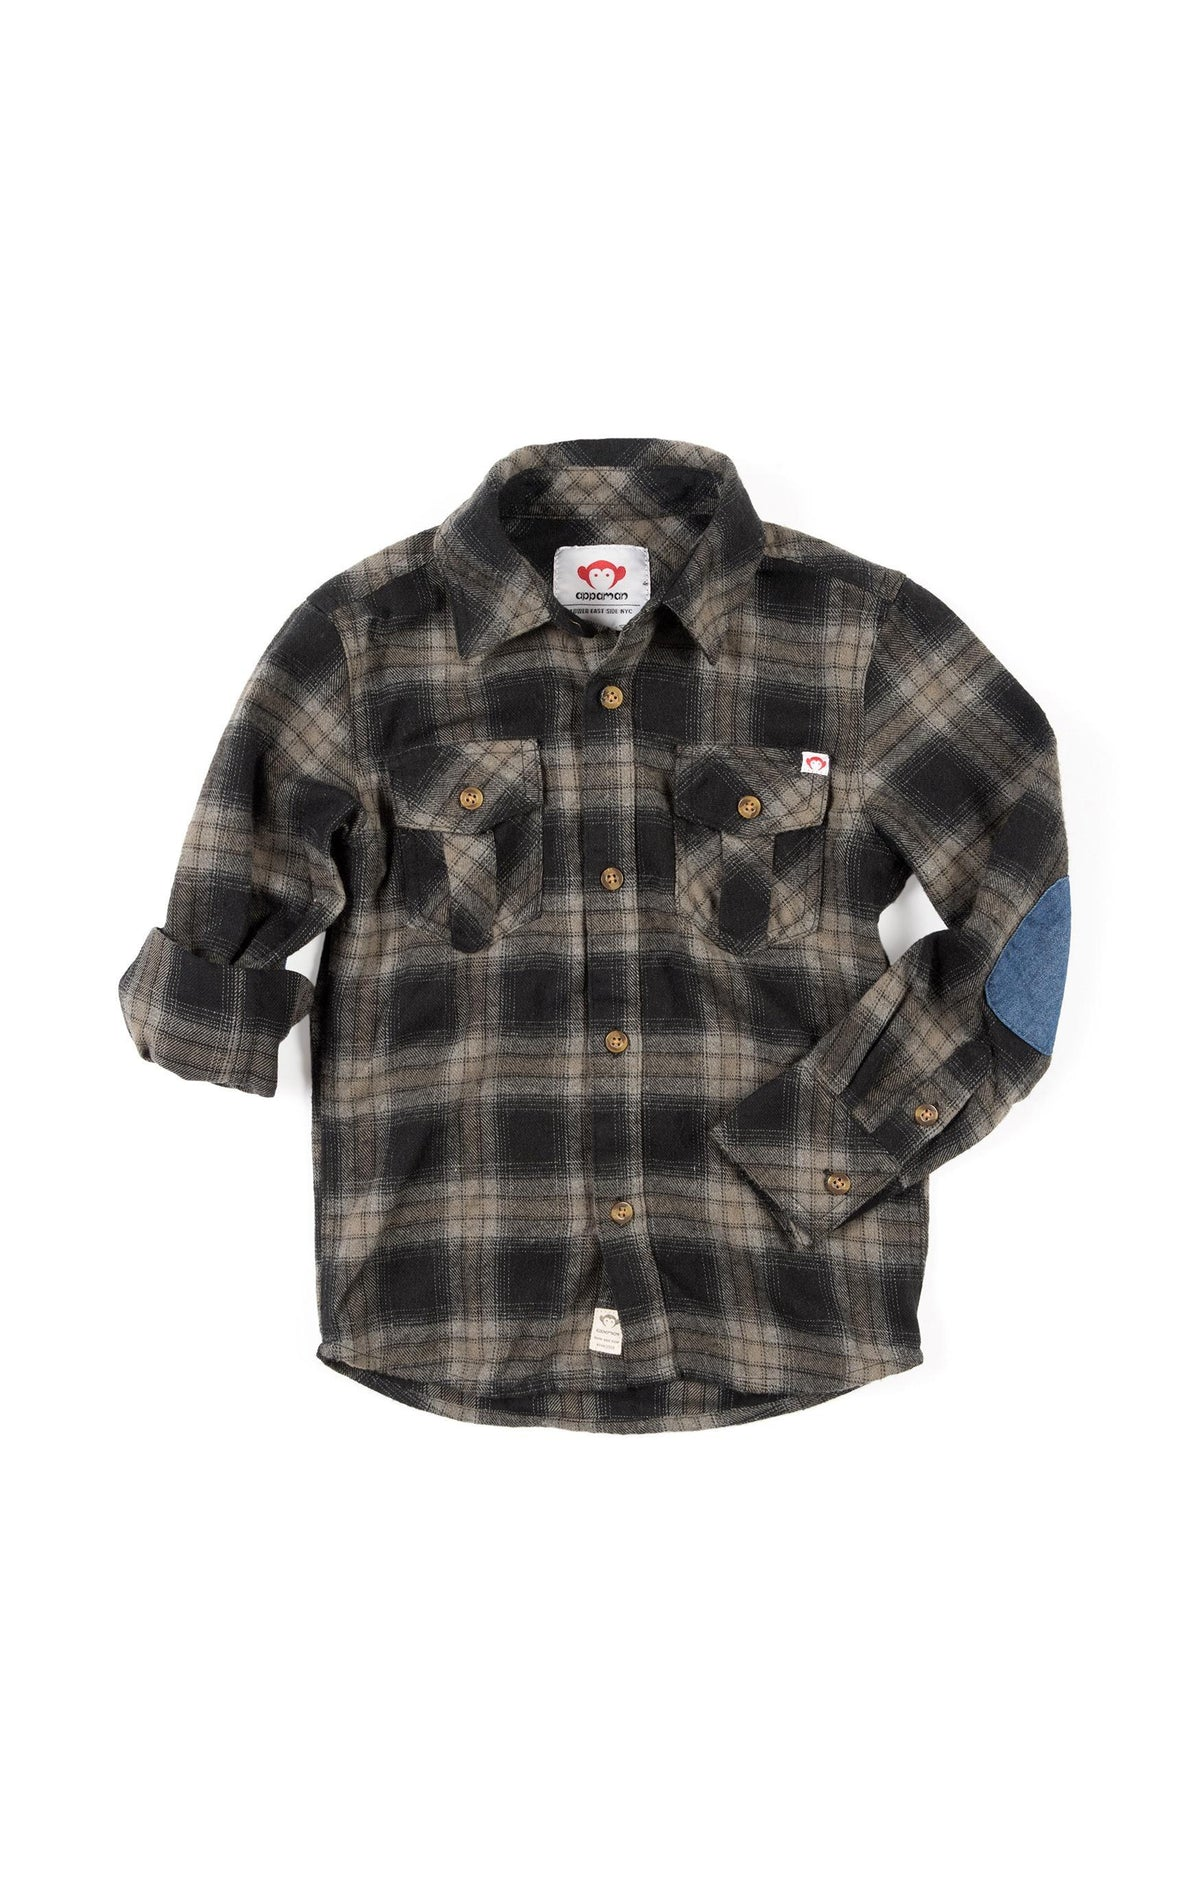 Boys Vintage Black Flannel Shirt